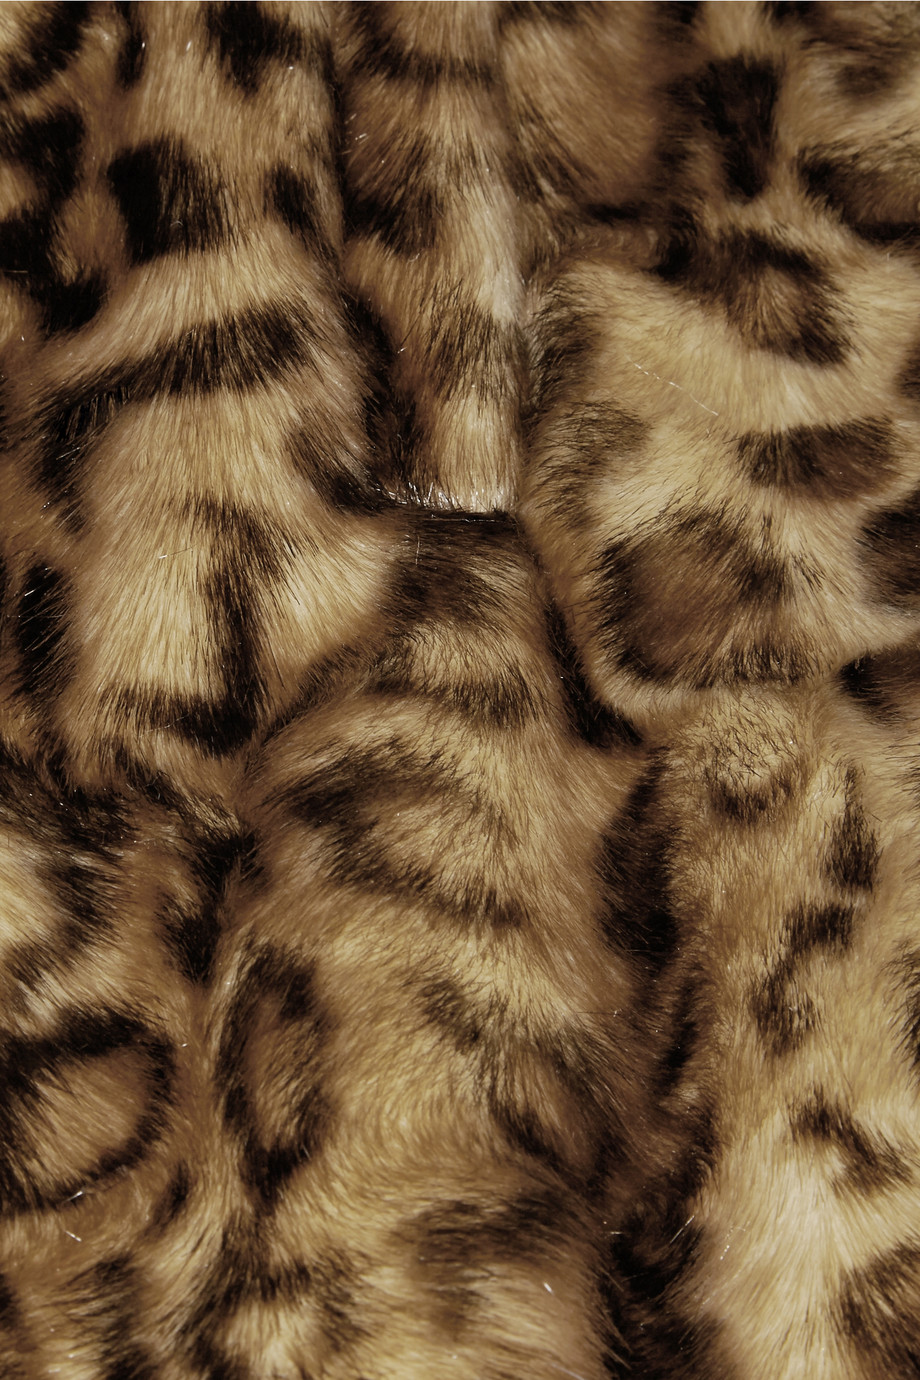 Simone Rocha Leopard-print faux fur coat – 65% at THE OUTNET.COM